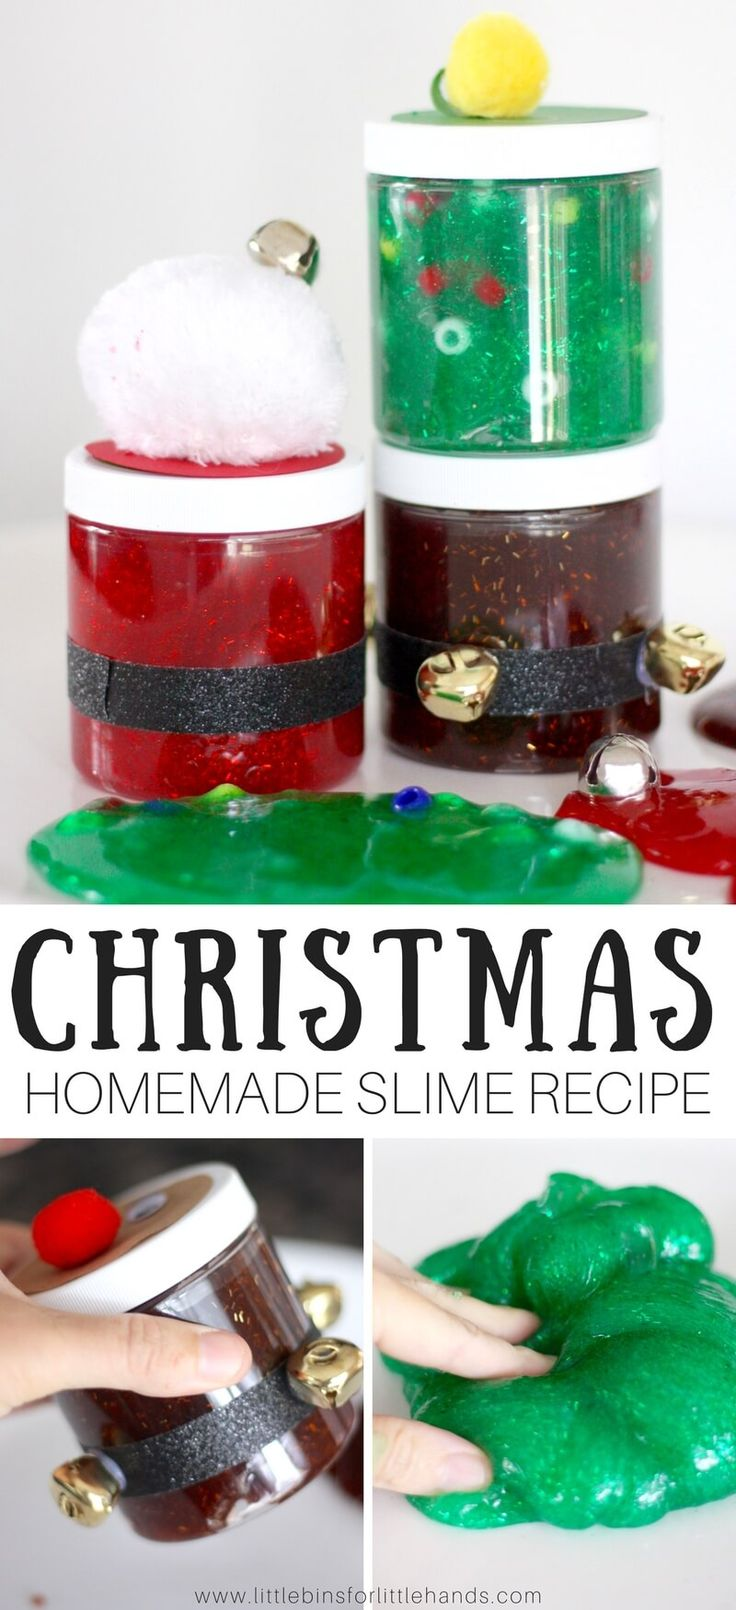 Tis the season to get creative with slime, and we are up to our elbows in slime over here doing just that! This time around we have been decorating our slime containers with festive Christmas themes. Our easy homemade Christmas slime recipes will fill your jars with awesome slime every time. Add your own fun holiday themes or try ours. Santa slime, reindeer slime, and Christmas tree slime are a hit! #slime #slimerecipe #christmasslime #DIYslime #homemadeslime